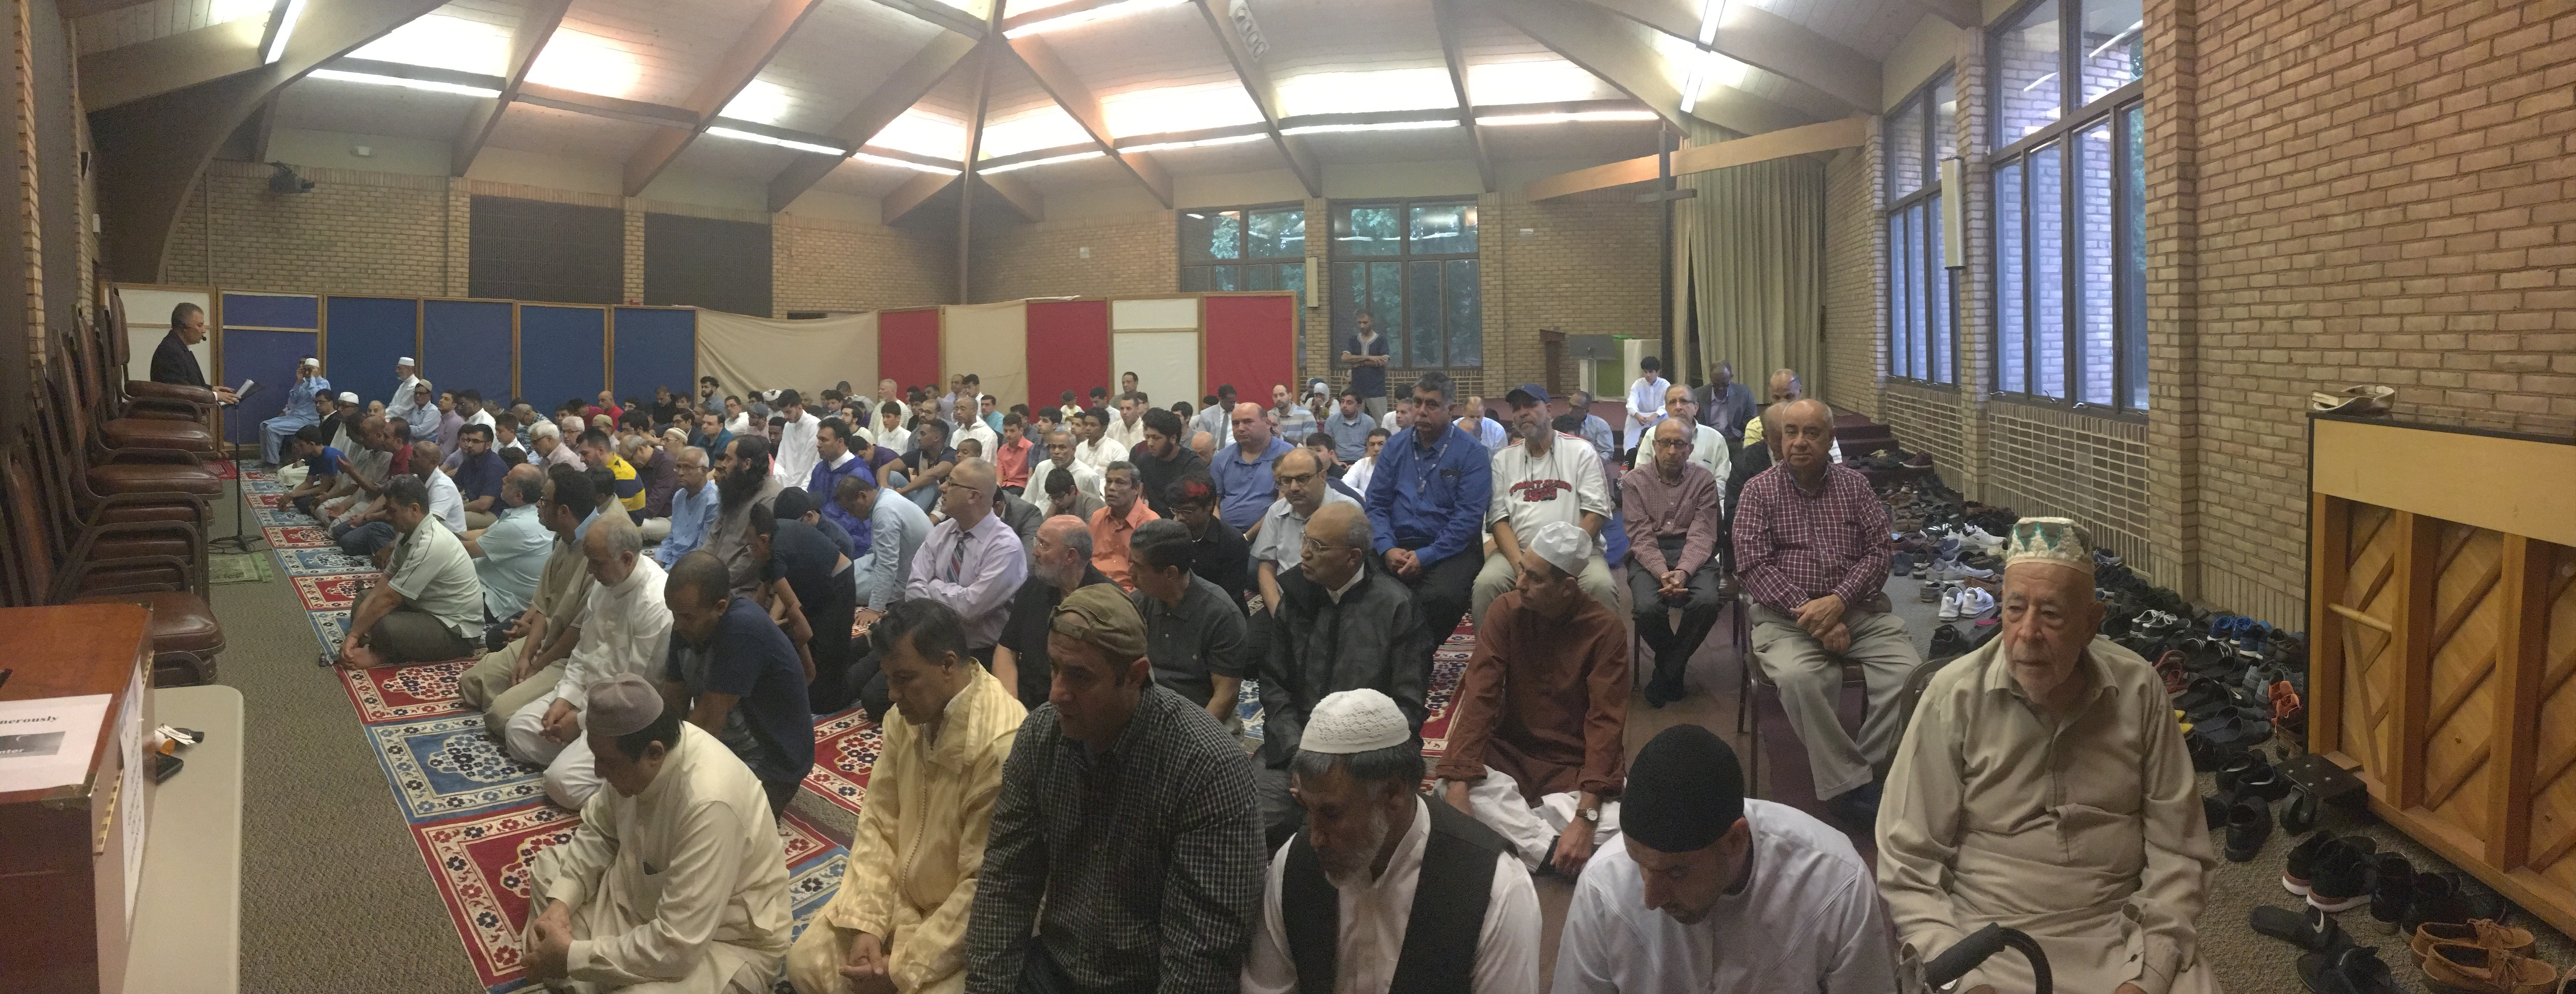 America Muslims perform Eid prayers at the St. Andrew's Church in Burke, Virginia, Aug. 21, 2018. The church regularly shares its space with the nearby Peace Islamic Center.